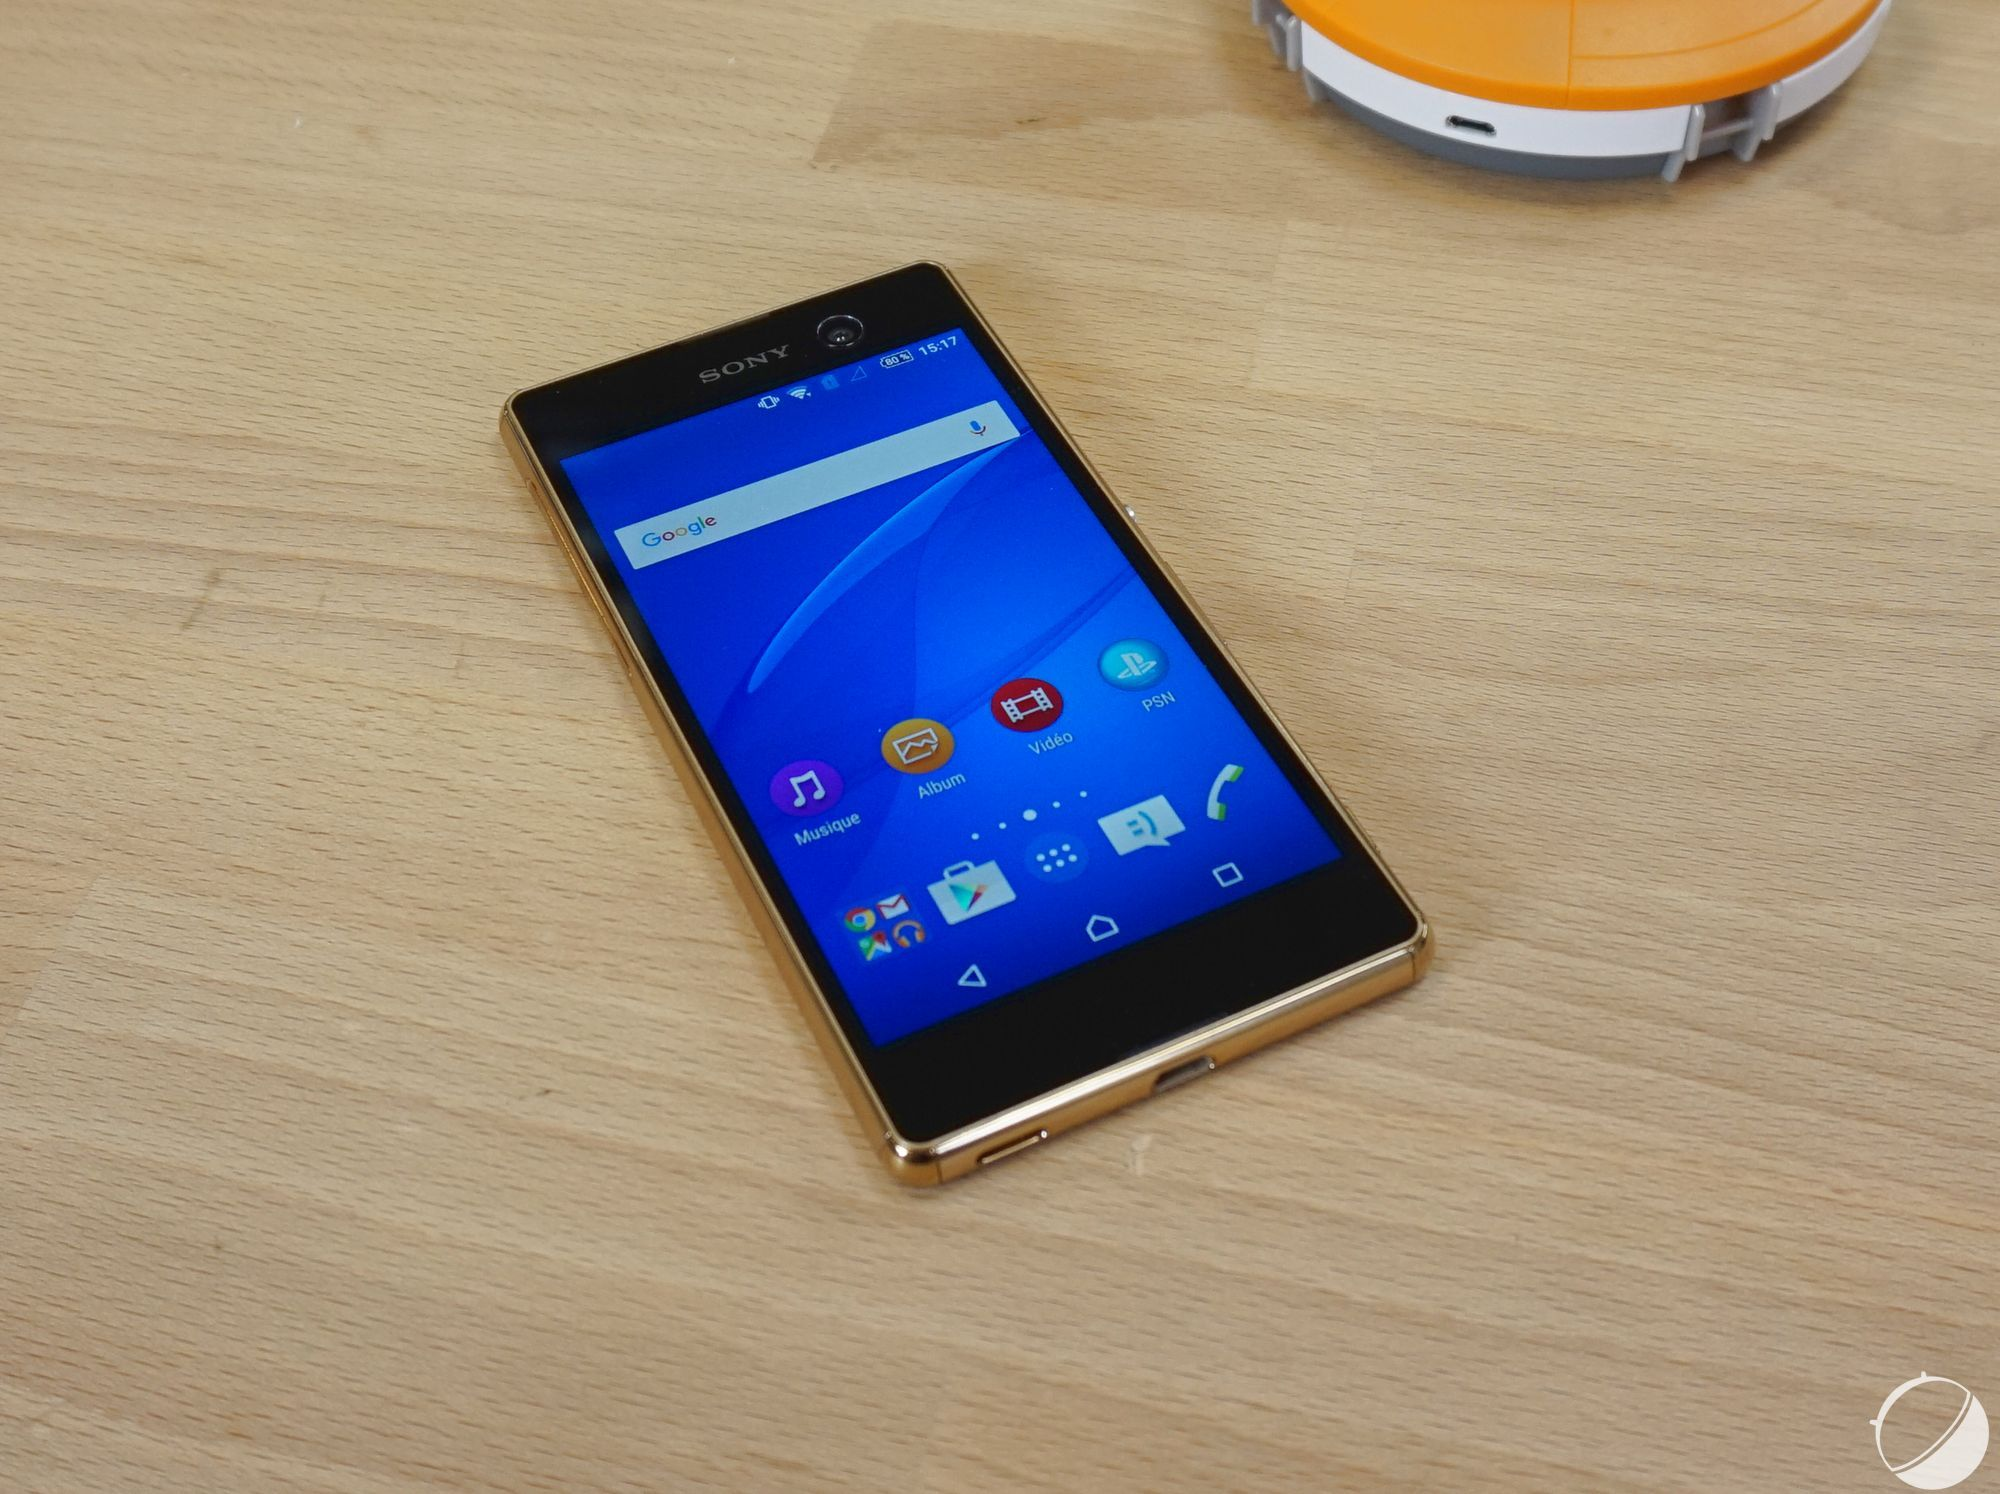 Sony xperia m5 video test - 2 part 8